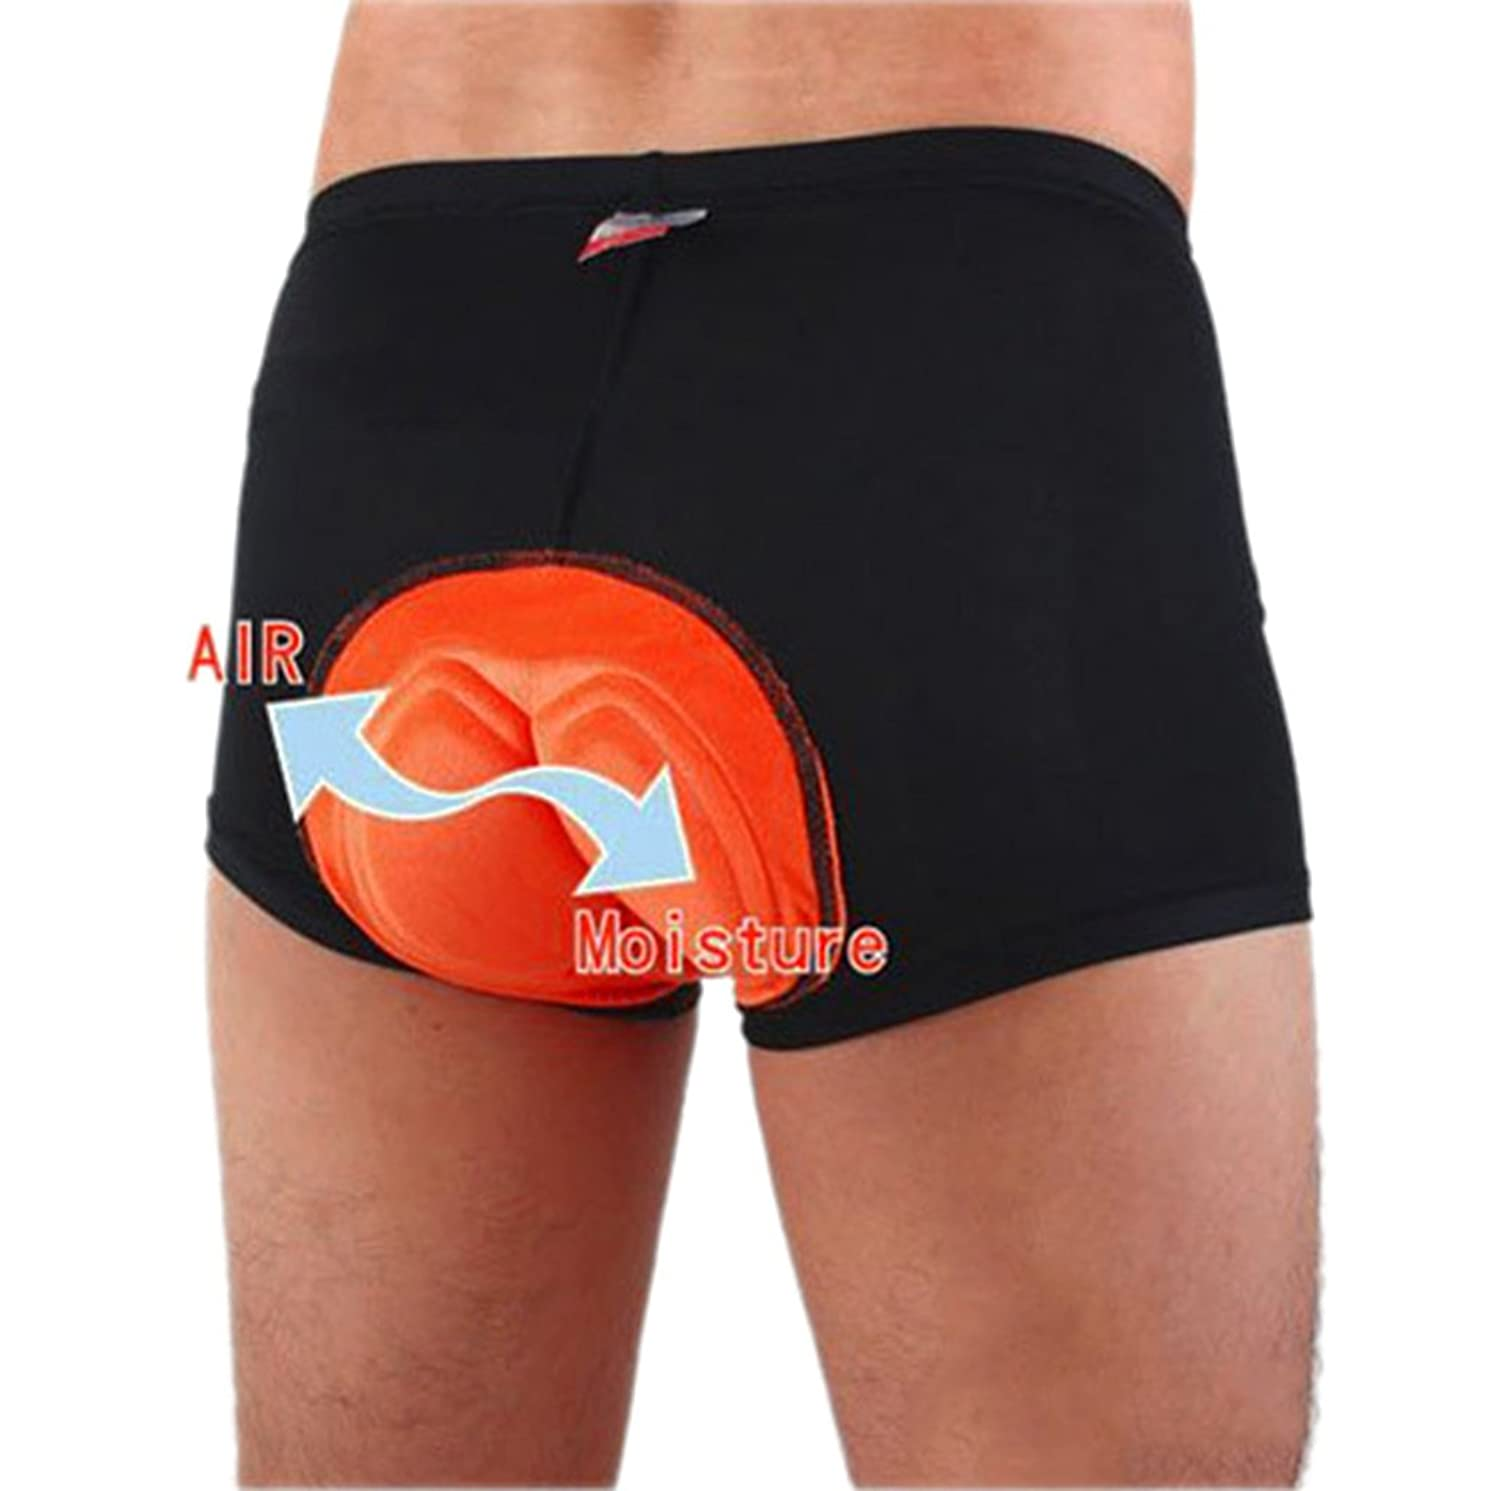 jntworld Men Cycling Shorts Black 3D Gel Padded Underwear High Air Permeability